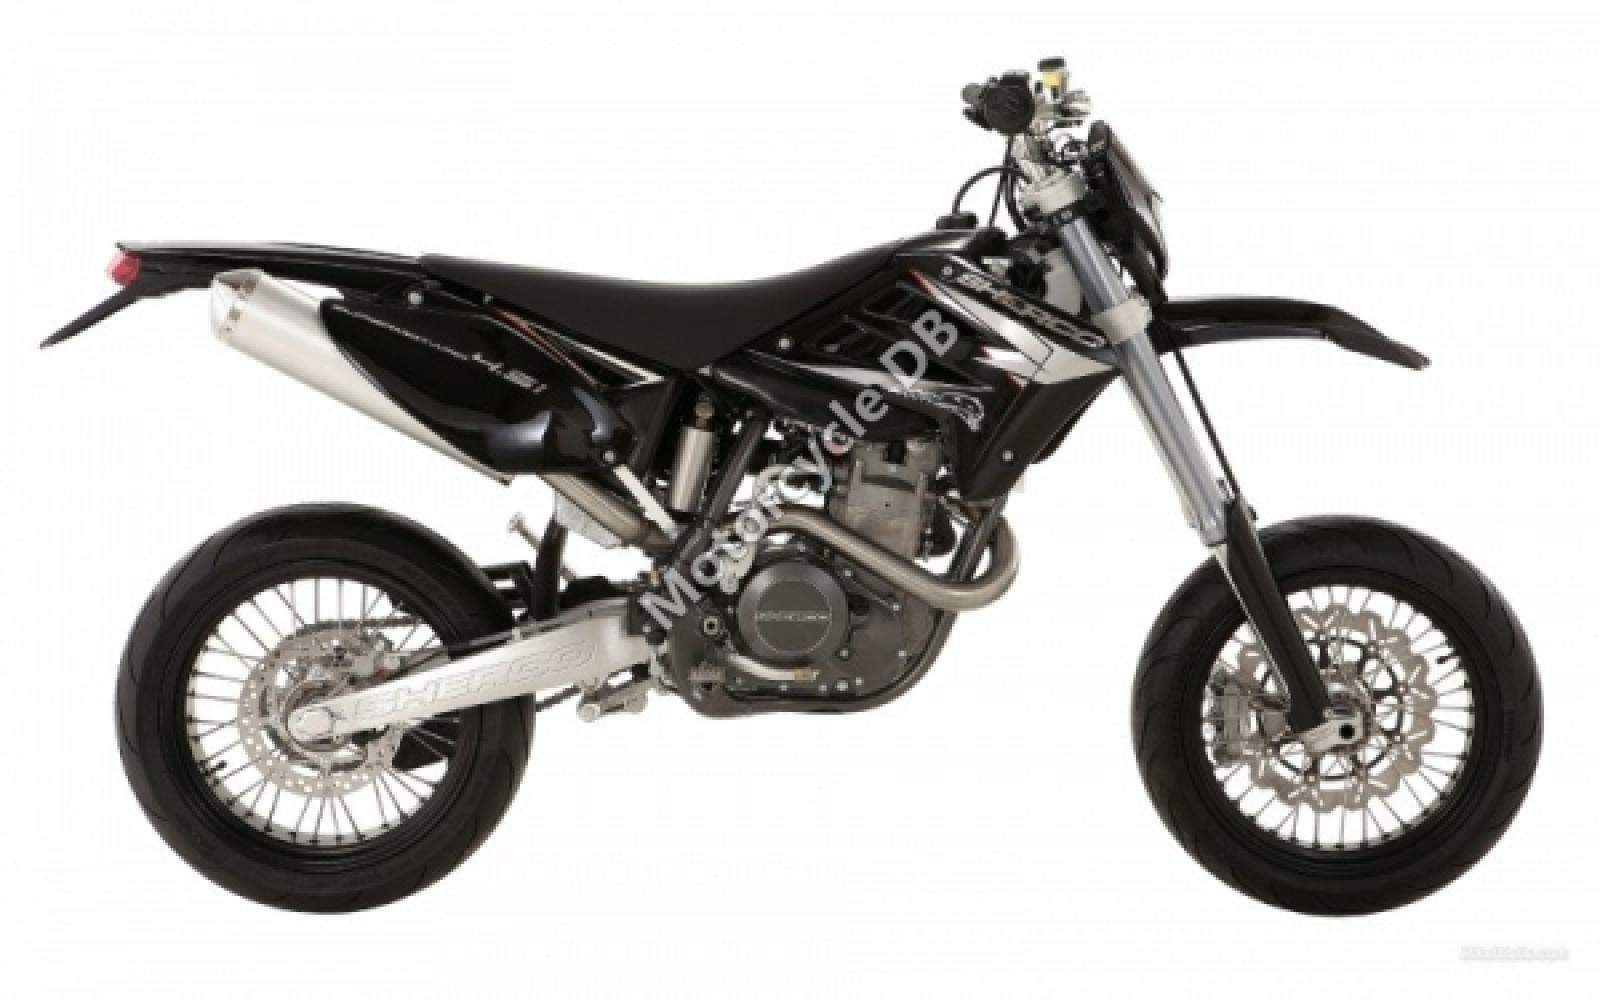 Мотоцикл Sherco 4.5I Supermotard 2008